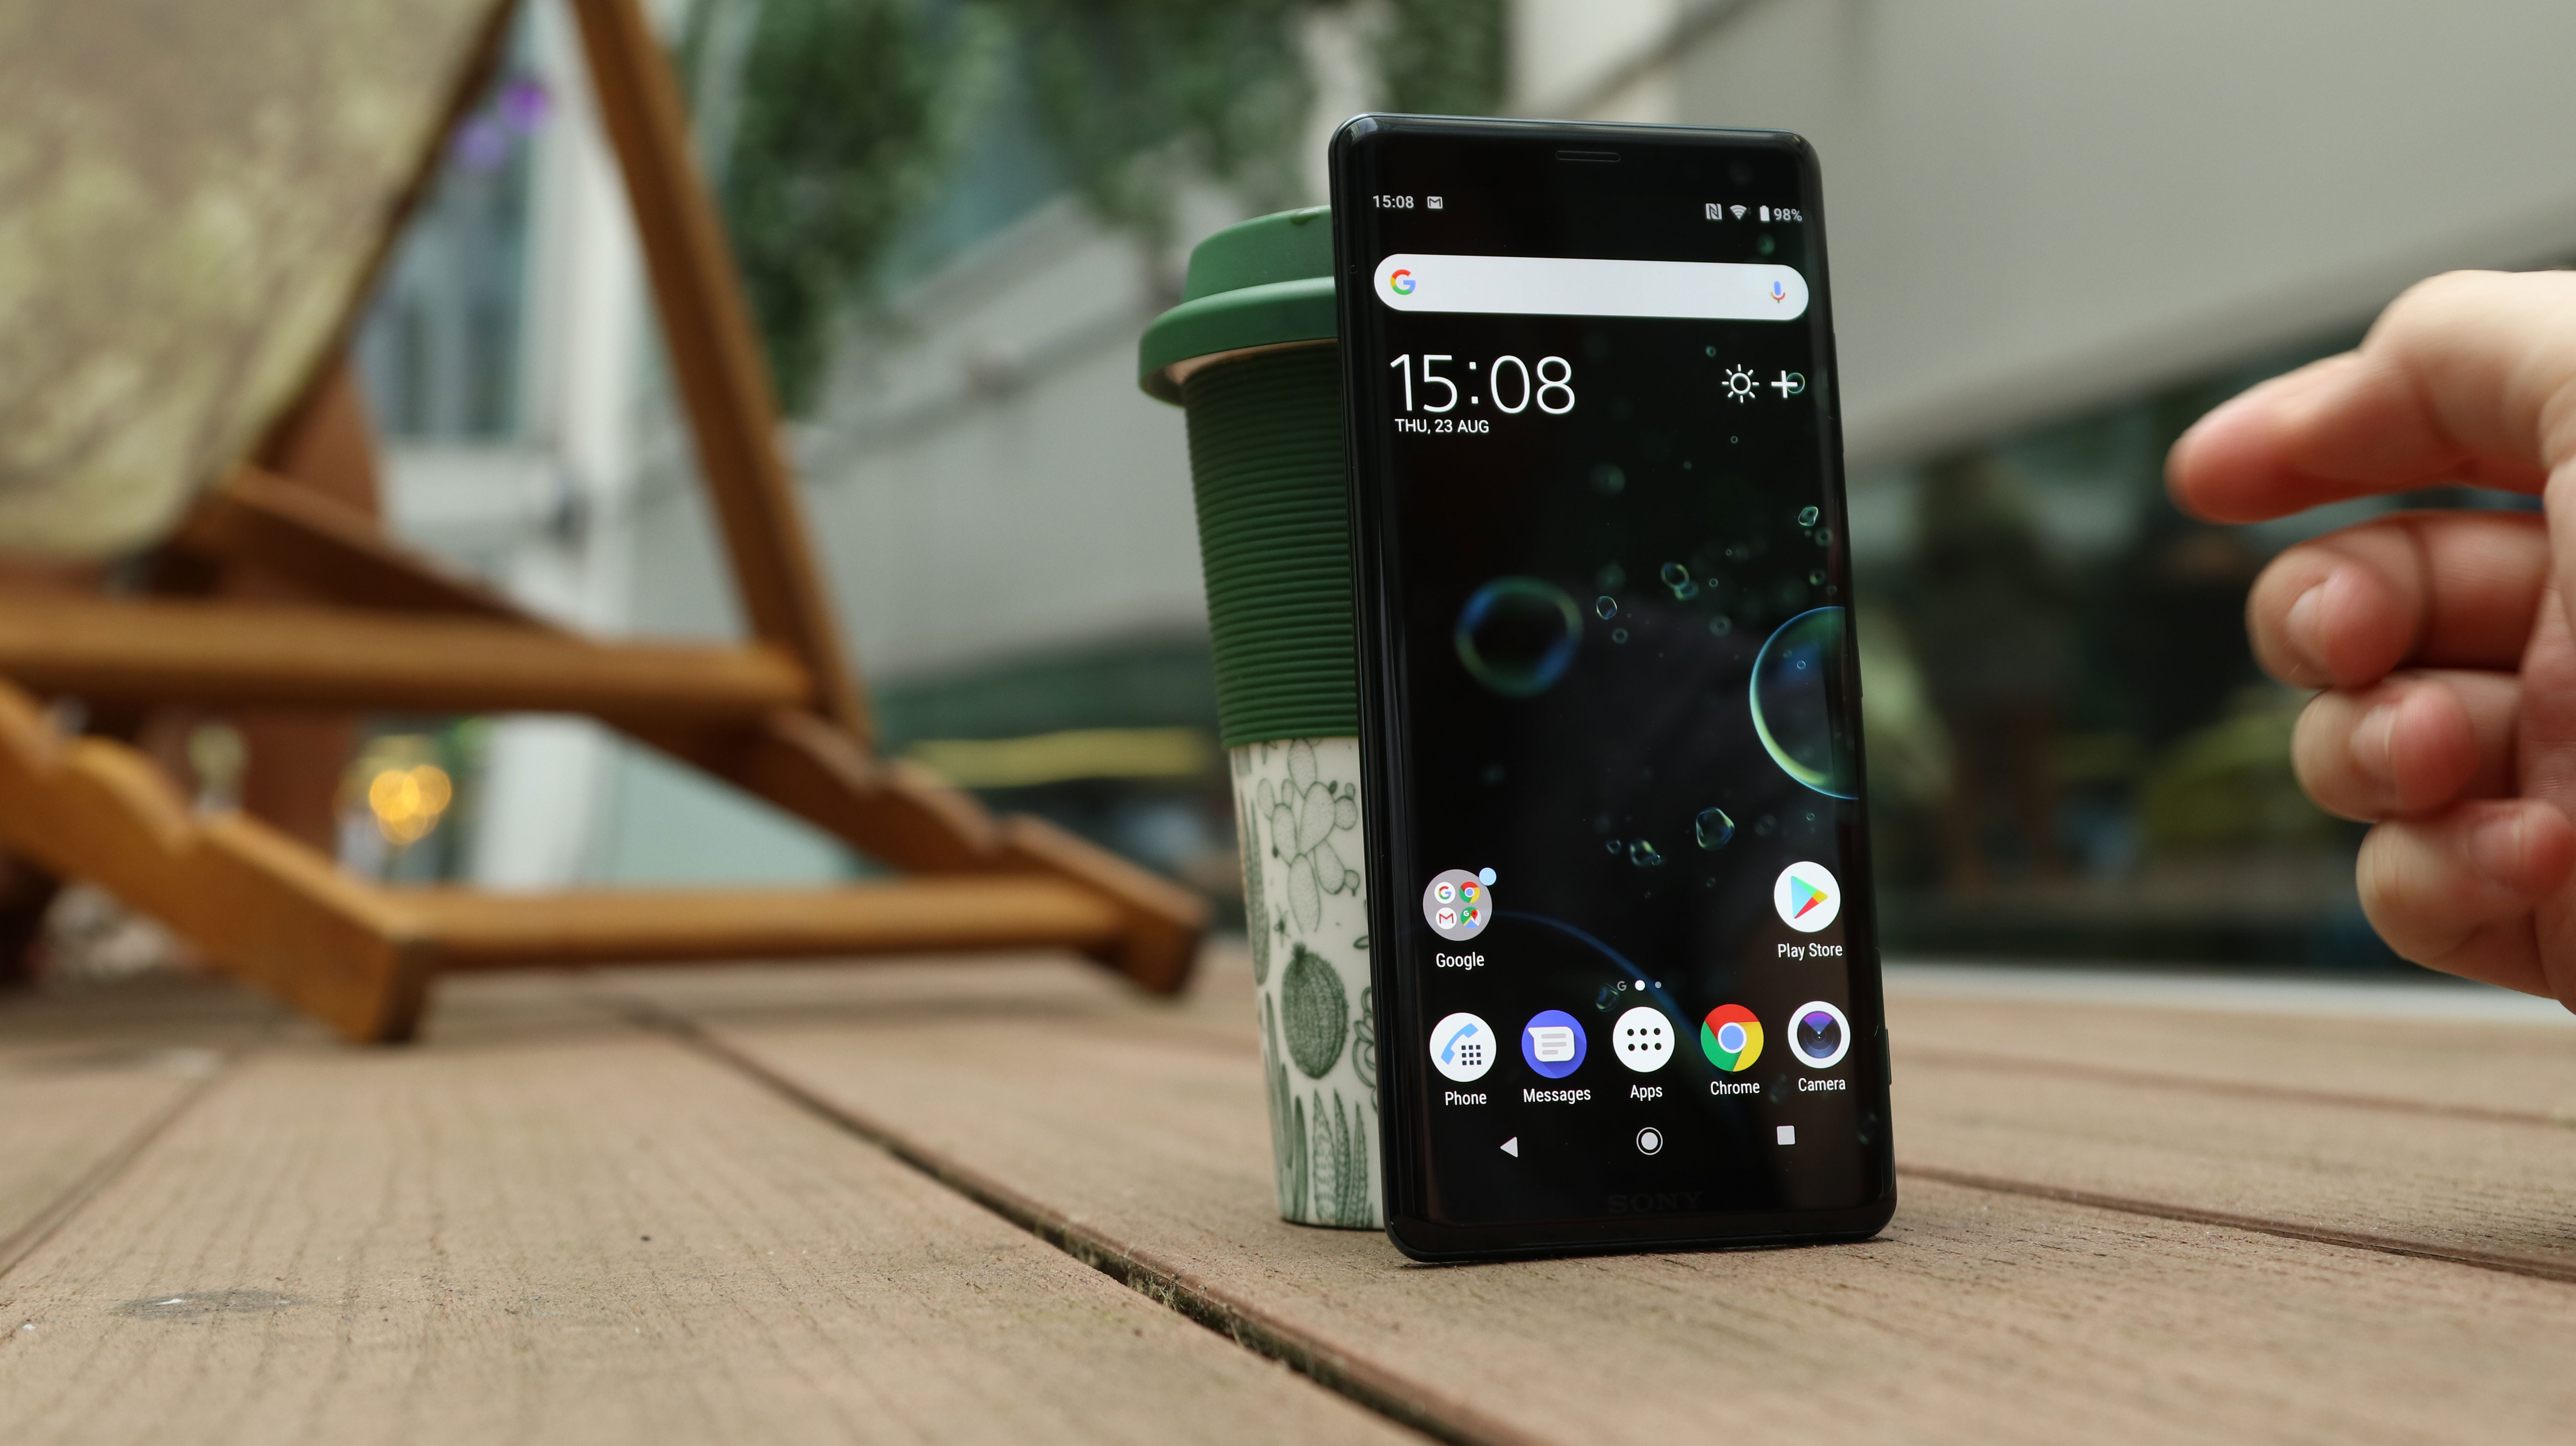 James rogerson mobiles365 the xperia xz3 has a bigger screen but more bezel than the iphone x fandeluxe Images